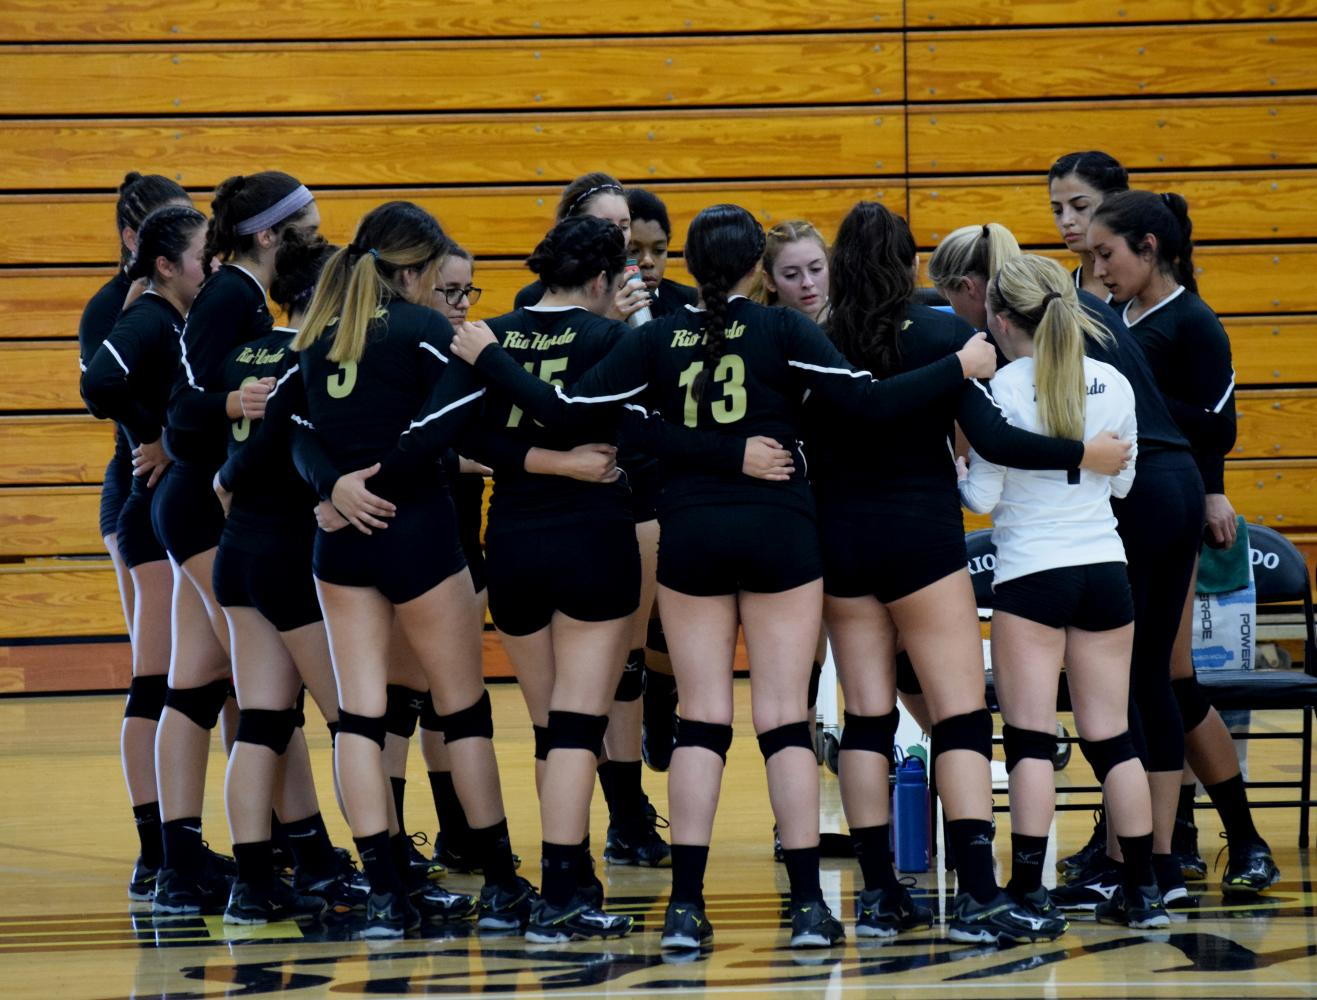 The Rio Hondo women's volleyball team has had a tough time finding consistent play this season.